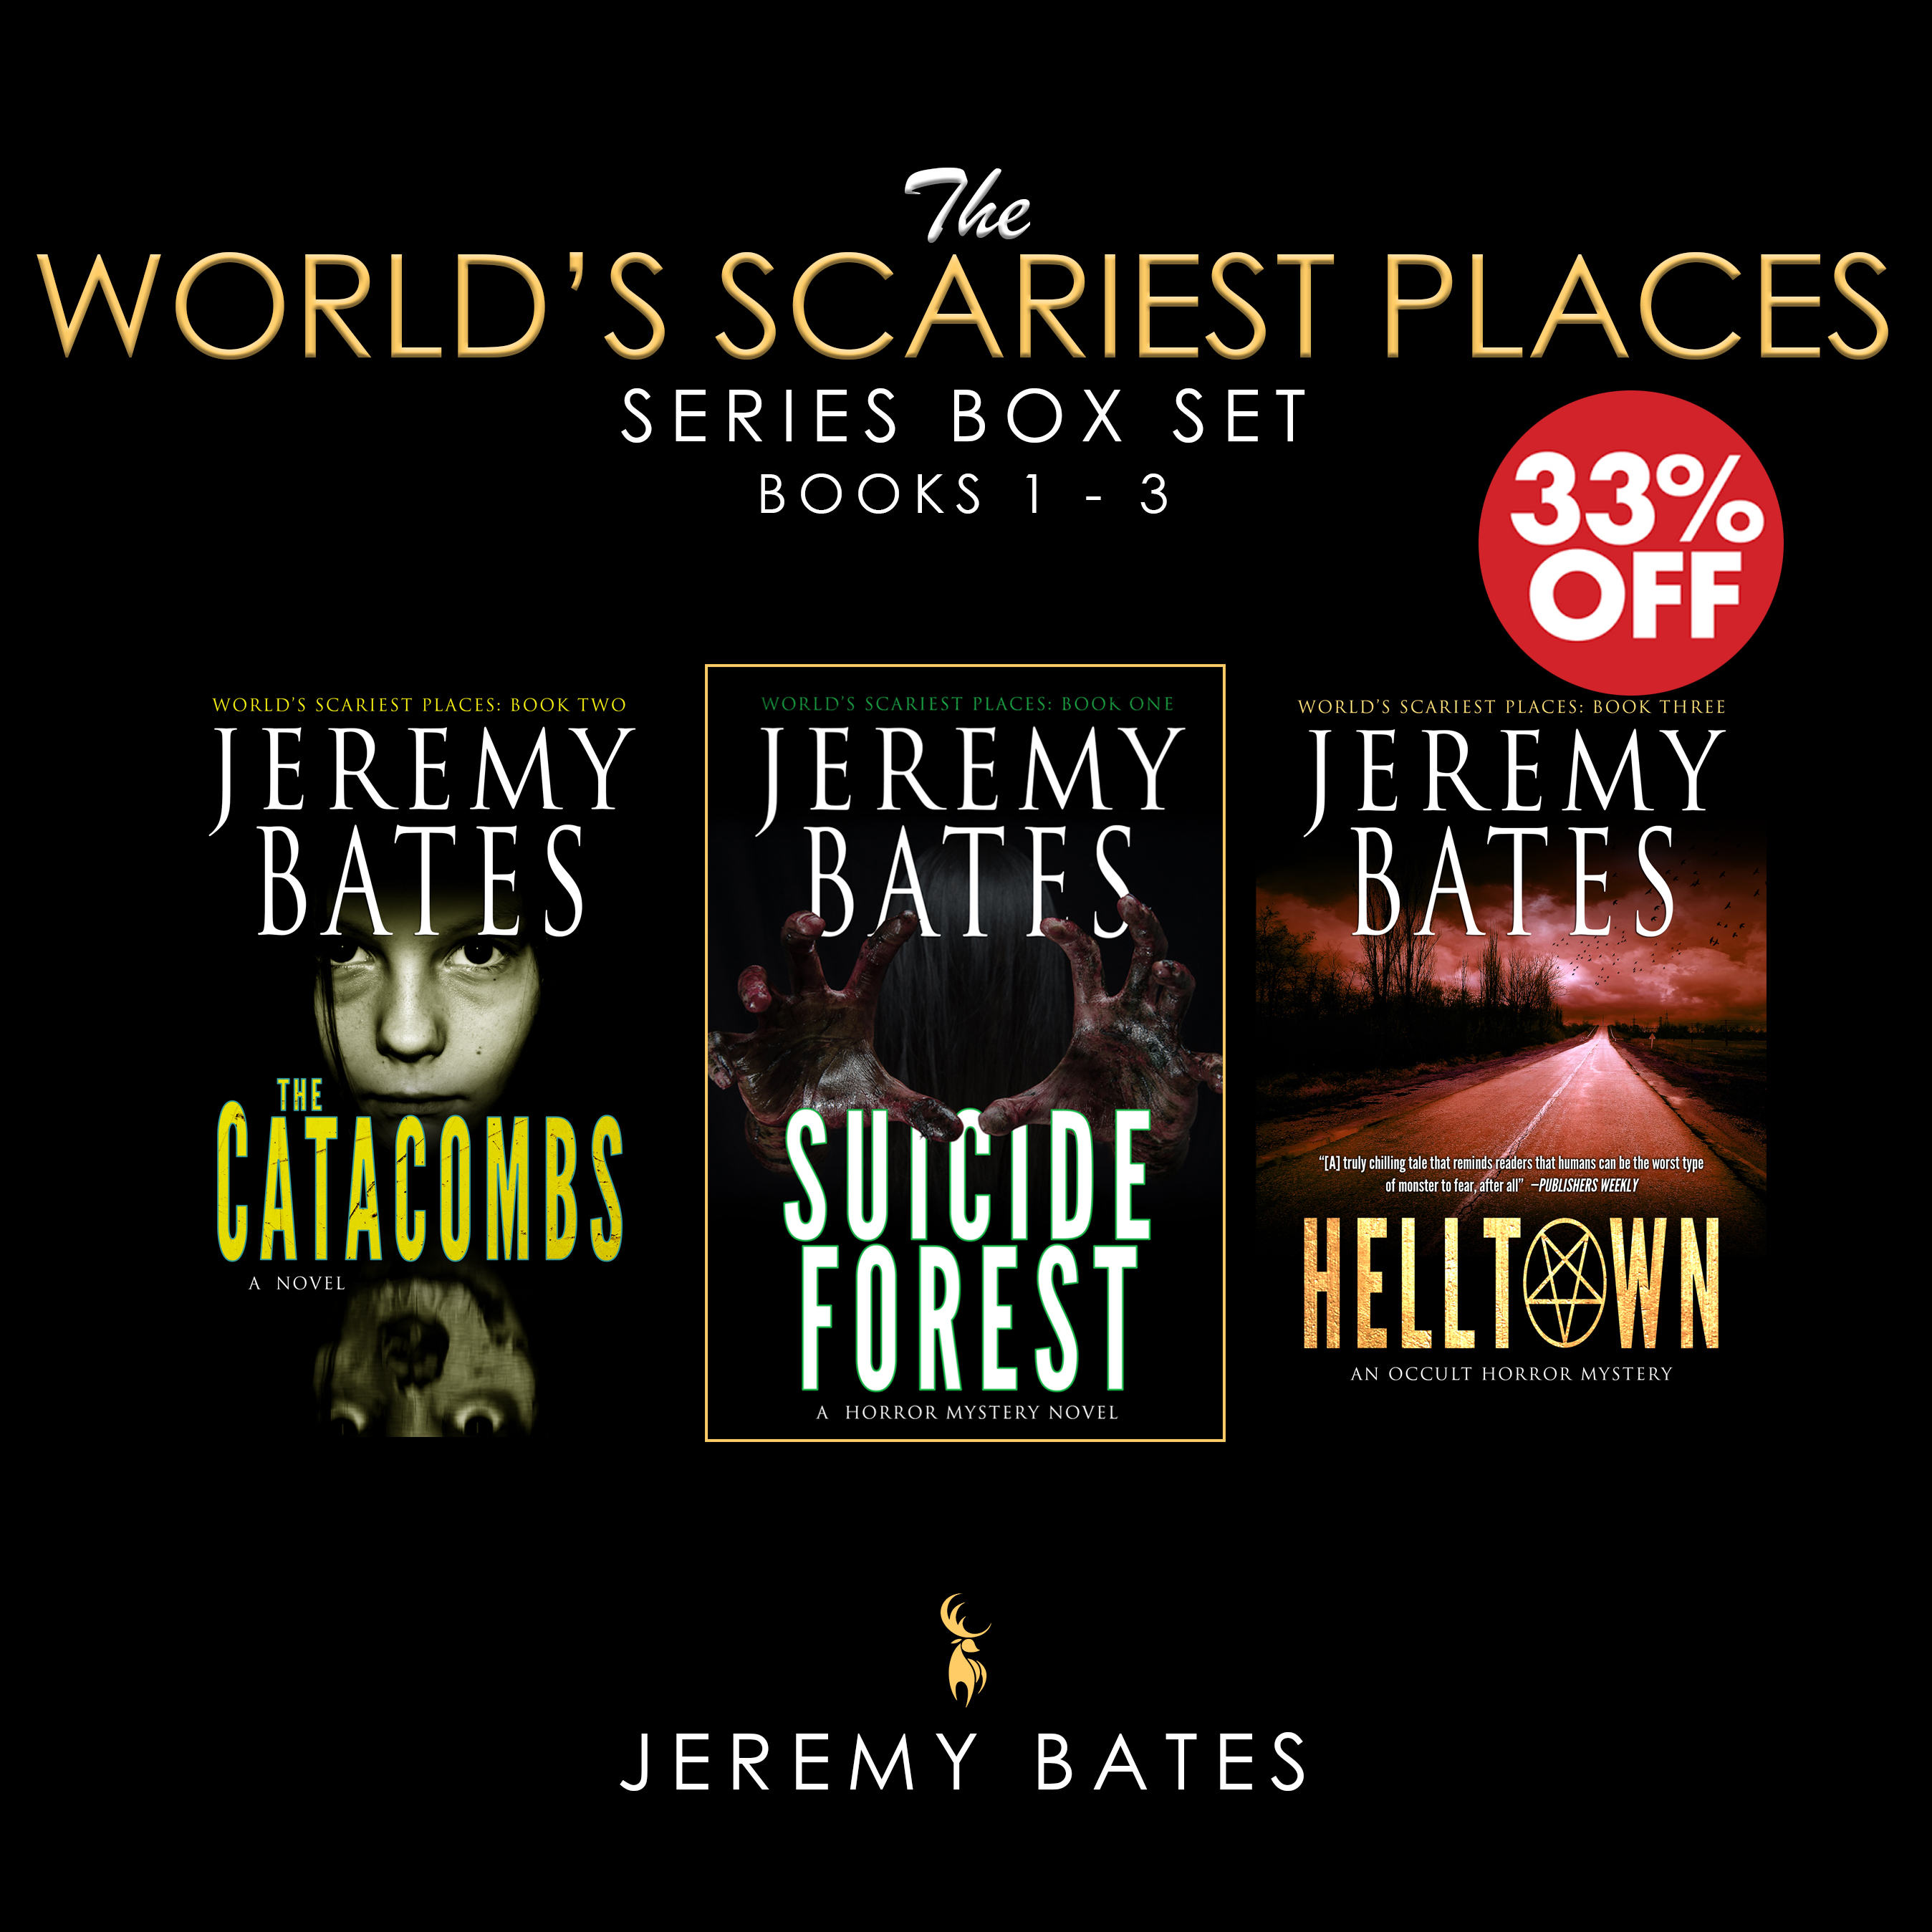 The World's Scariest Places Series (Books 1 - 3 Box Set): Suicide